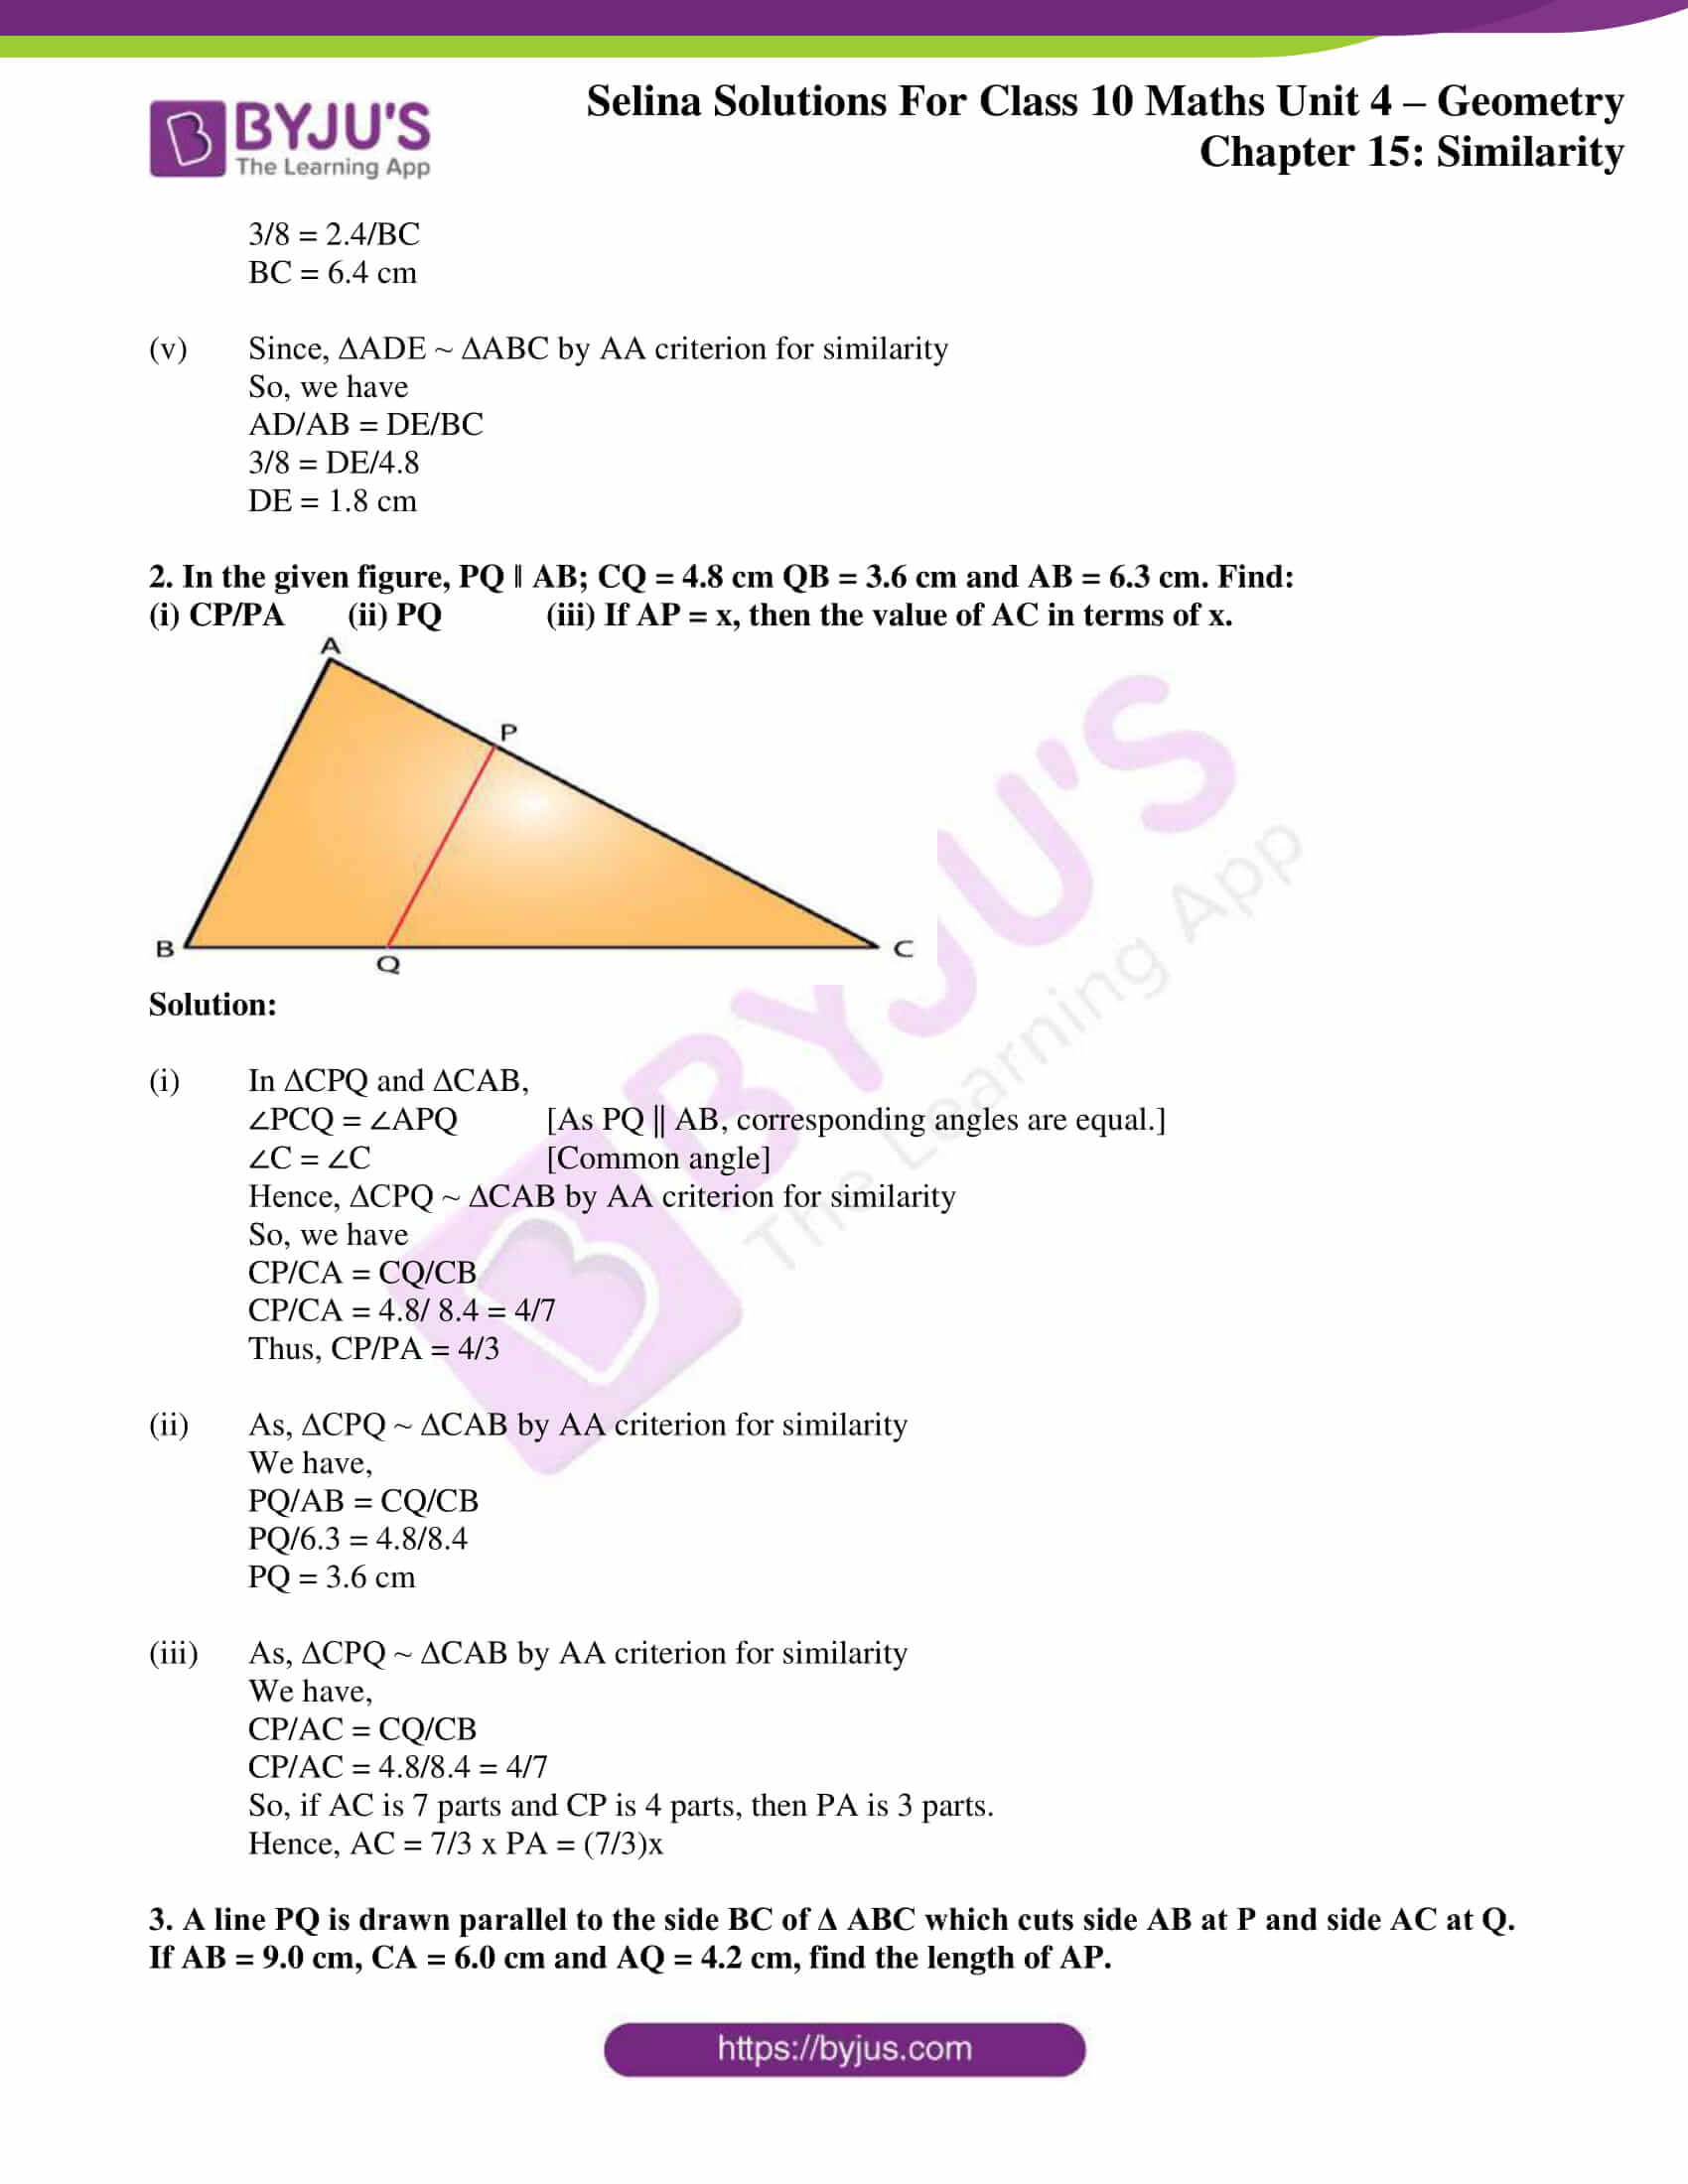 selina solution concise maths class 10 chapter 15 ex b 2